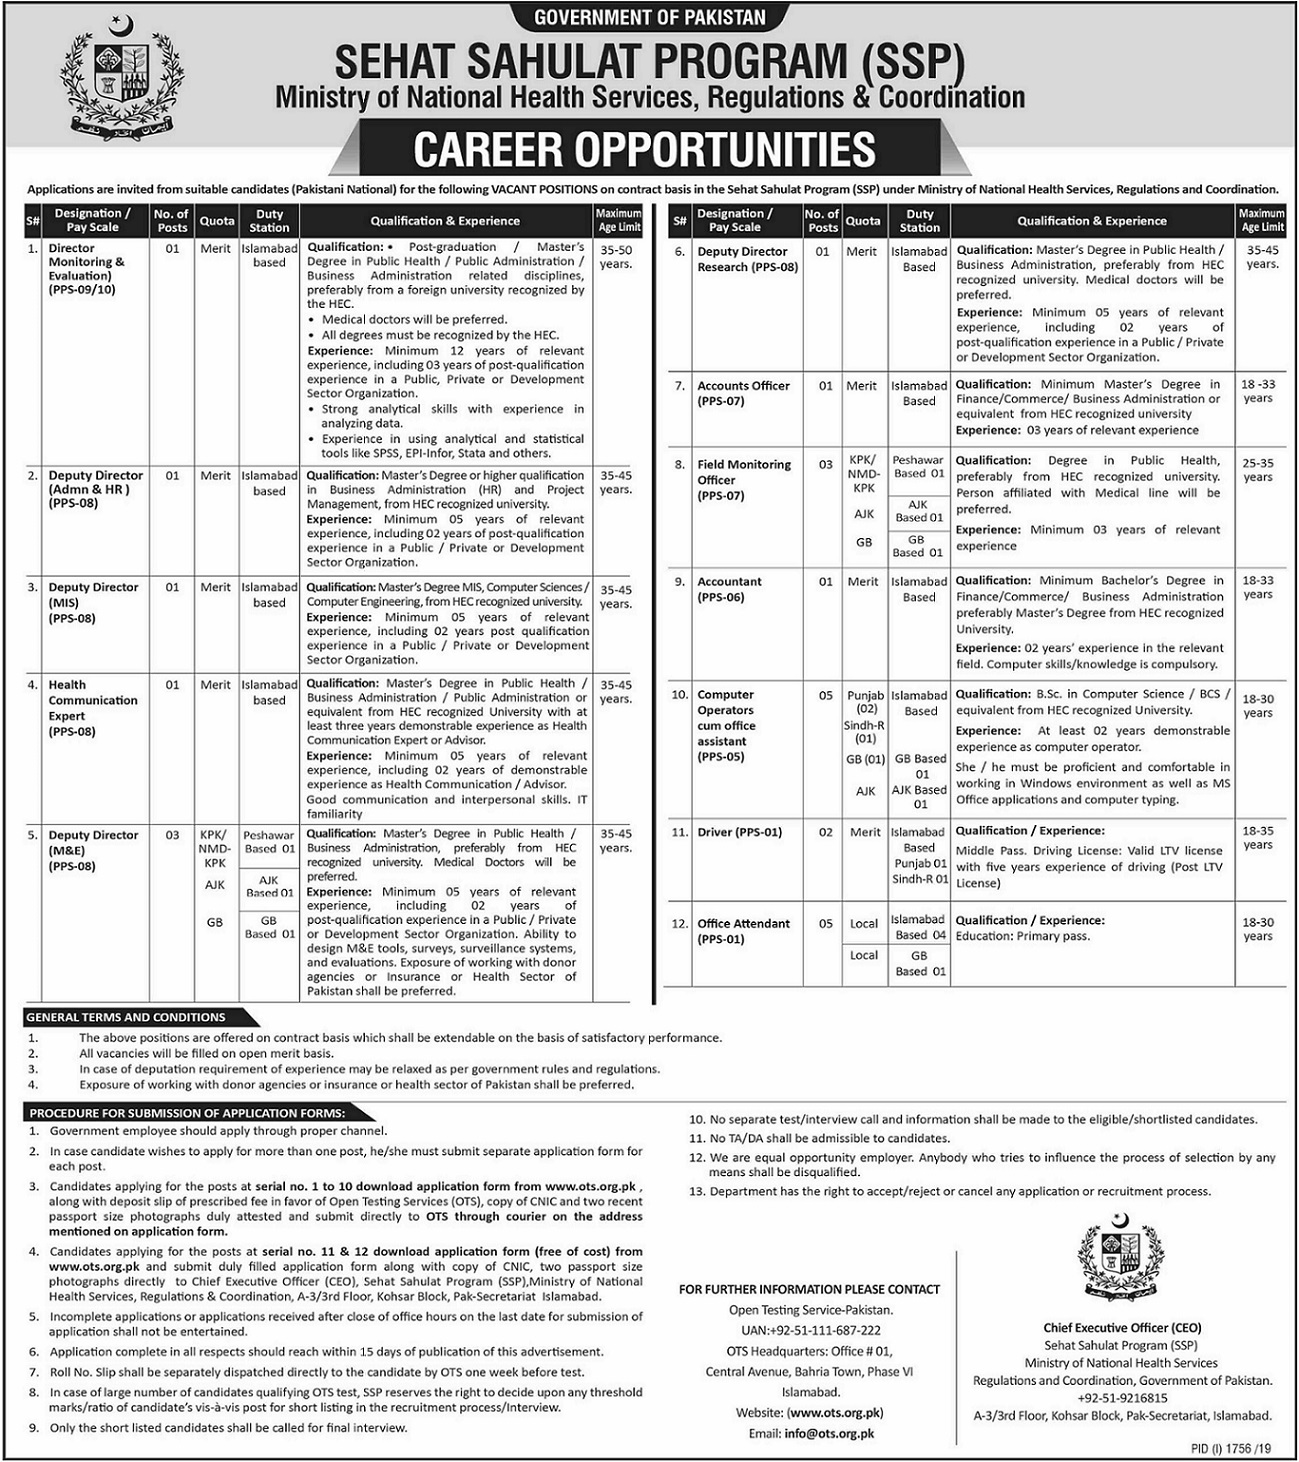 Sehat Sahulat Program (SSP) Jobs in Ministry of National Health Services Regulations & Coordination Jobs 2019